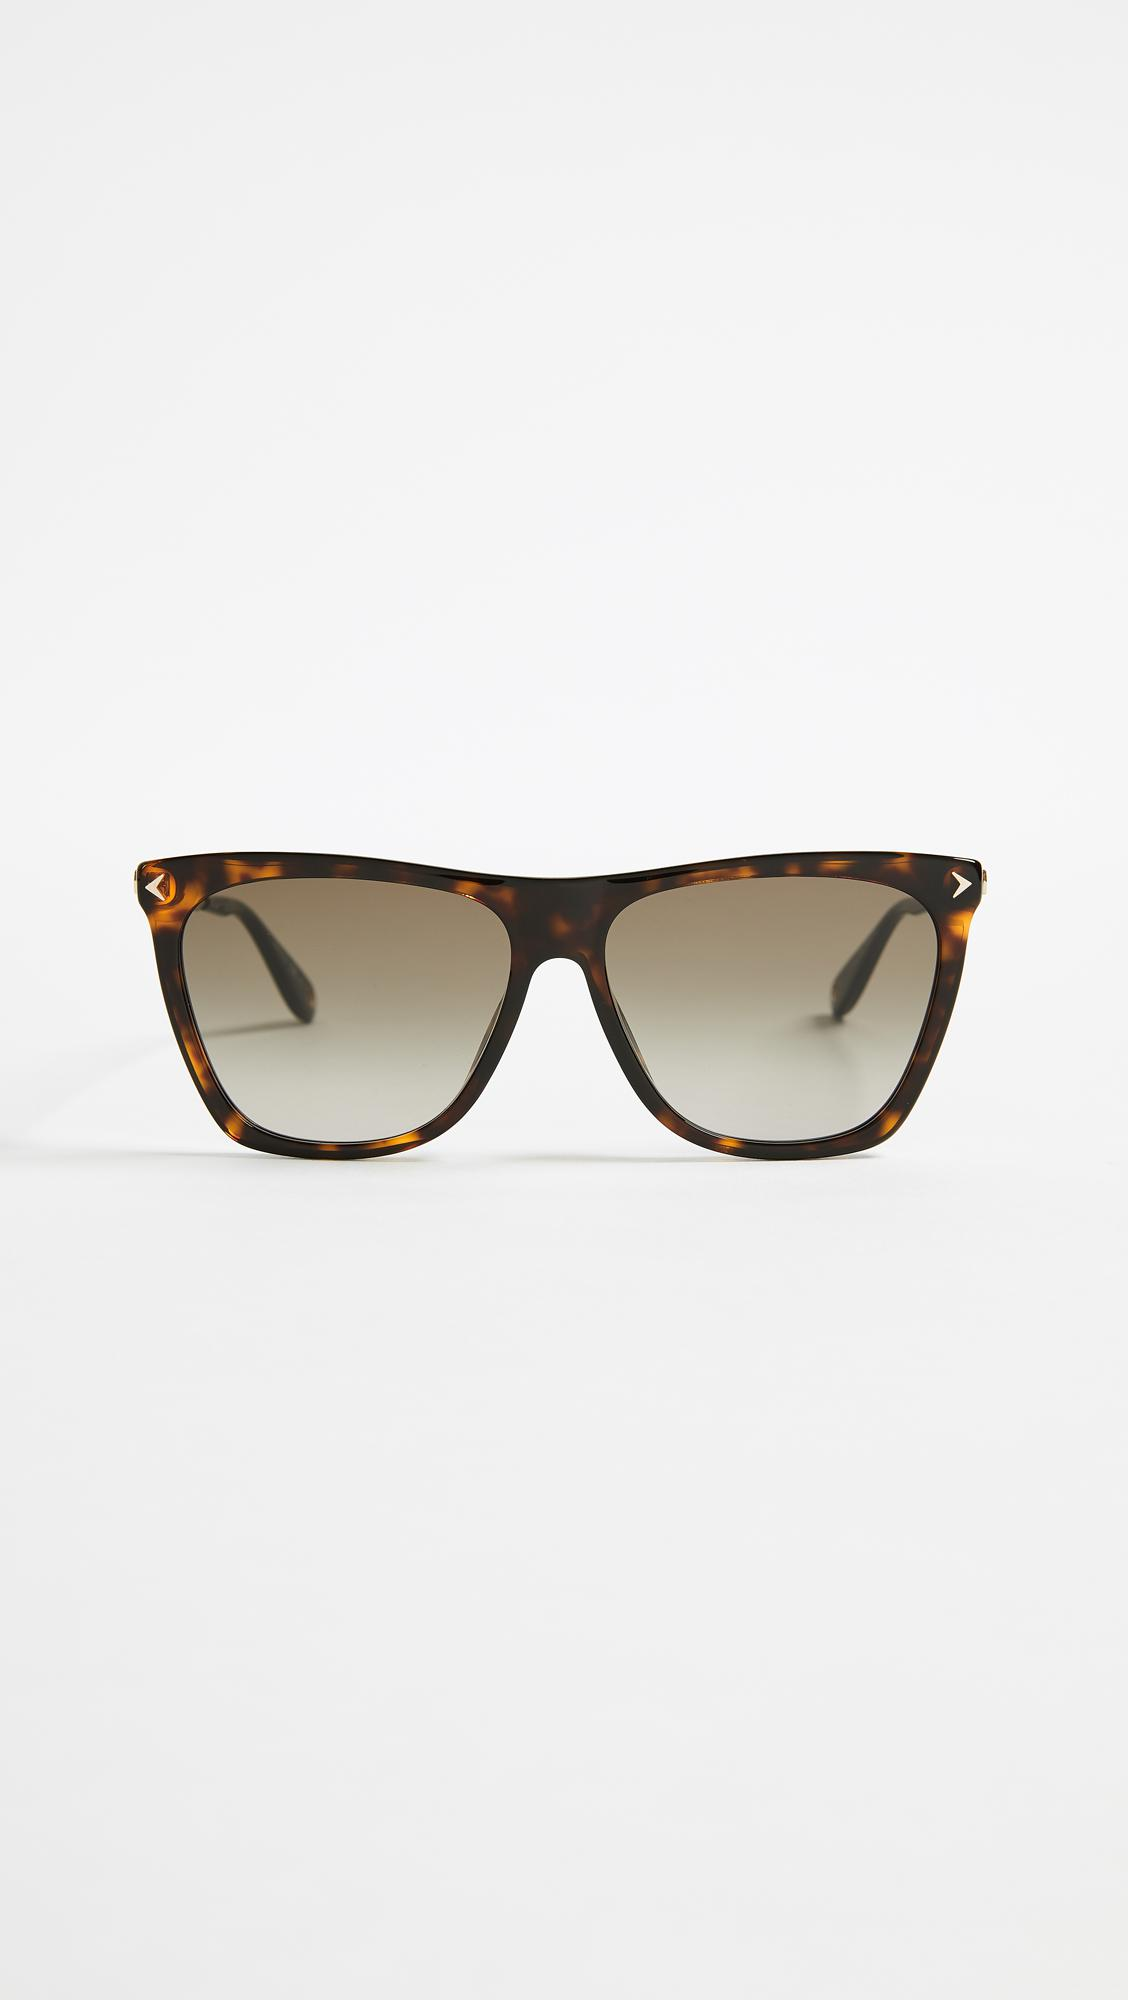 c7144ebede0 Lyst - Givenchy Square Gradient Sunglasses in Brown